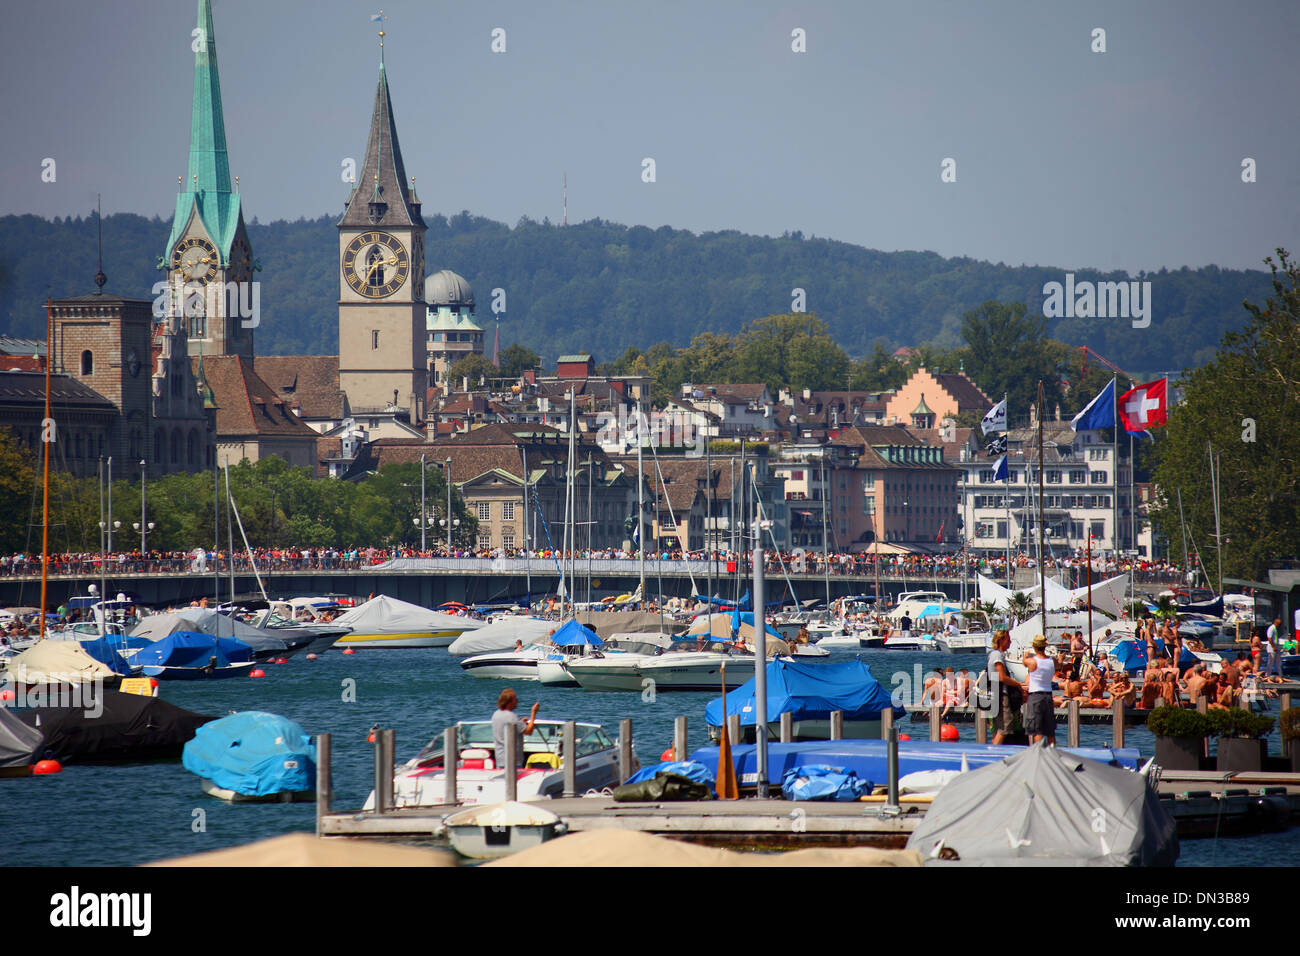 Switzerland, Zurich, city and lake. - Stock Image